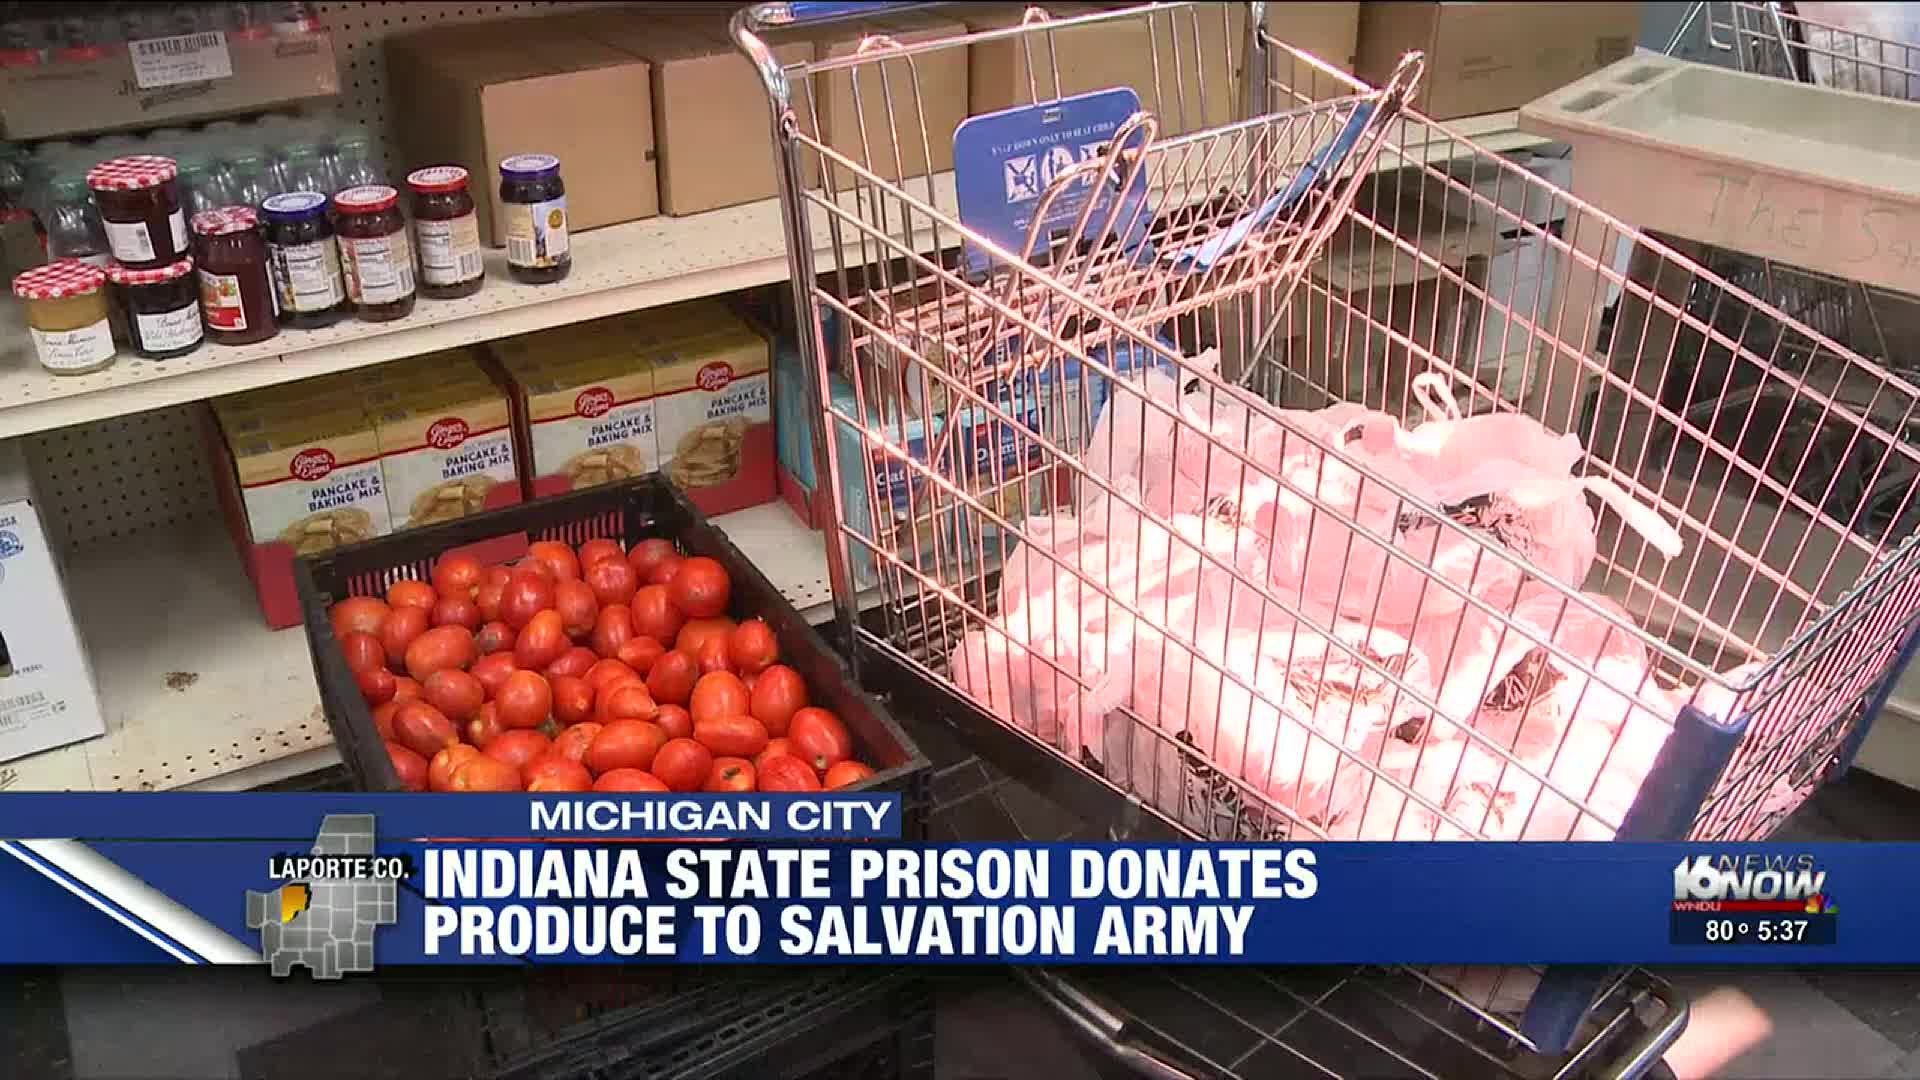 Indiana State Prison Donates Fresh Produce To Michigan City Salvation Army